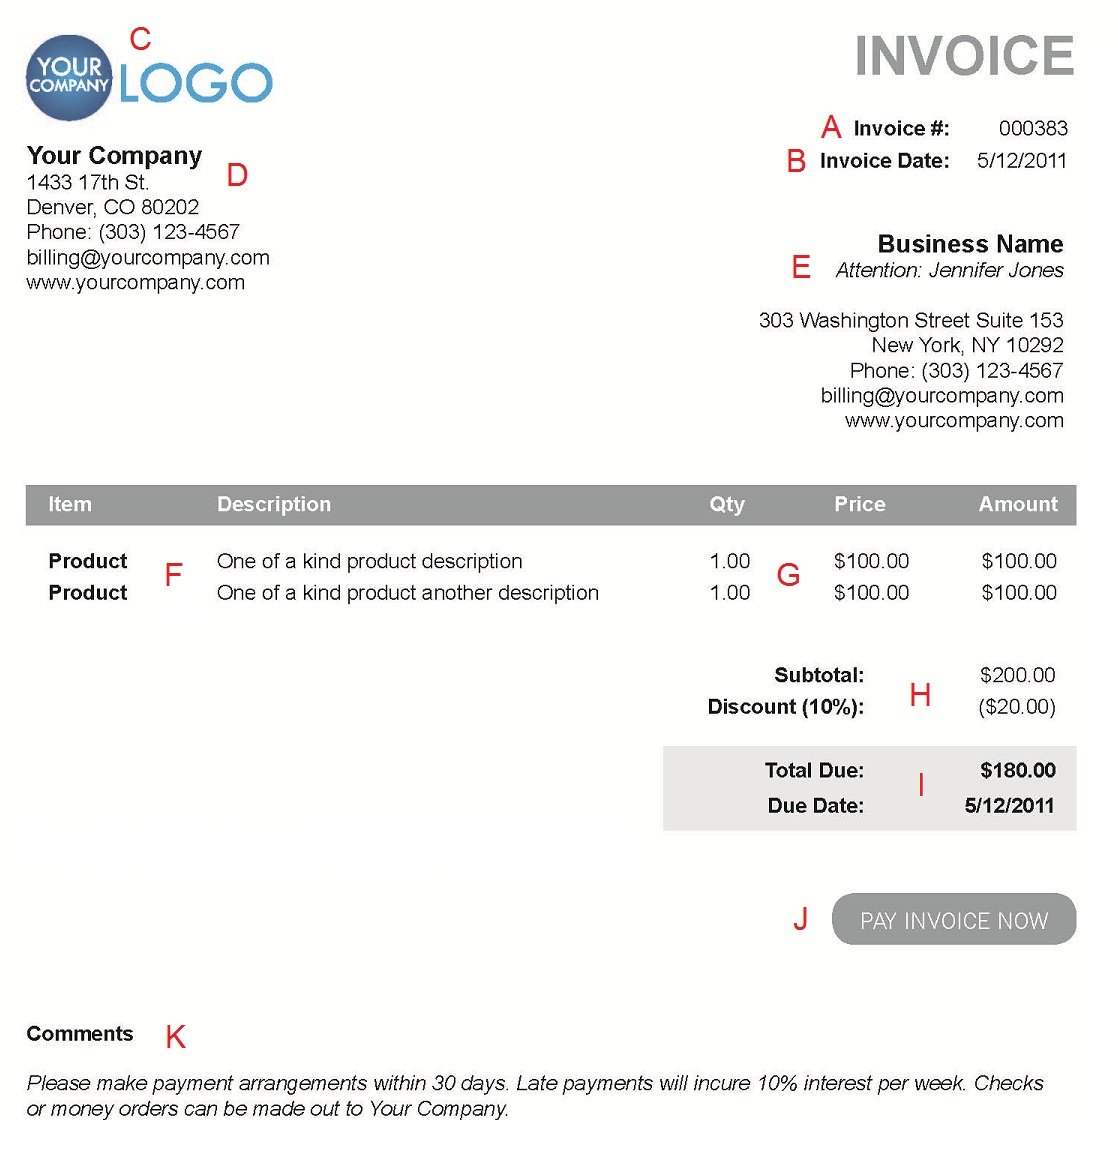 Bringjacobolivierhomeus  Sweet The  Different Sections Of An Electronic Payment Invoice With Hot A  With Beautiful Receipt Storage Book Also Cooking Receipts In Addition Format For Receipt Of Payment And Forwarders Certificate Of Receipt As Well As Empty Receipt Additionally Electricity Bill Payment Receipt From Paysimplecom With Bringjacobolivierhomeus  Hot The  Different Sections Of An Electronic Payment Invoice With Beautiful A  And Sweet Receipt Storage Book Also Cooking Receipts In Addition Format For Receipt Of Payment From Paysimplecom